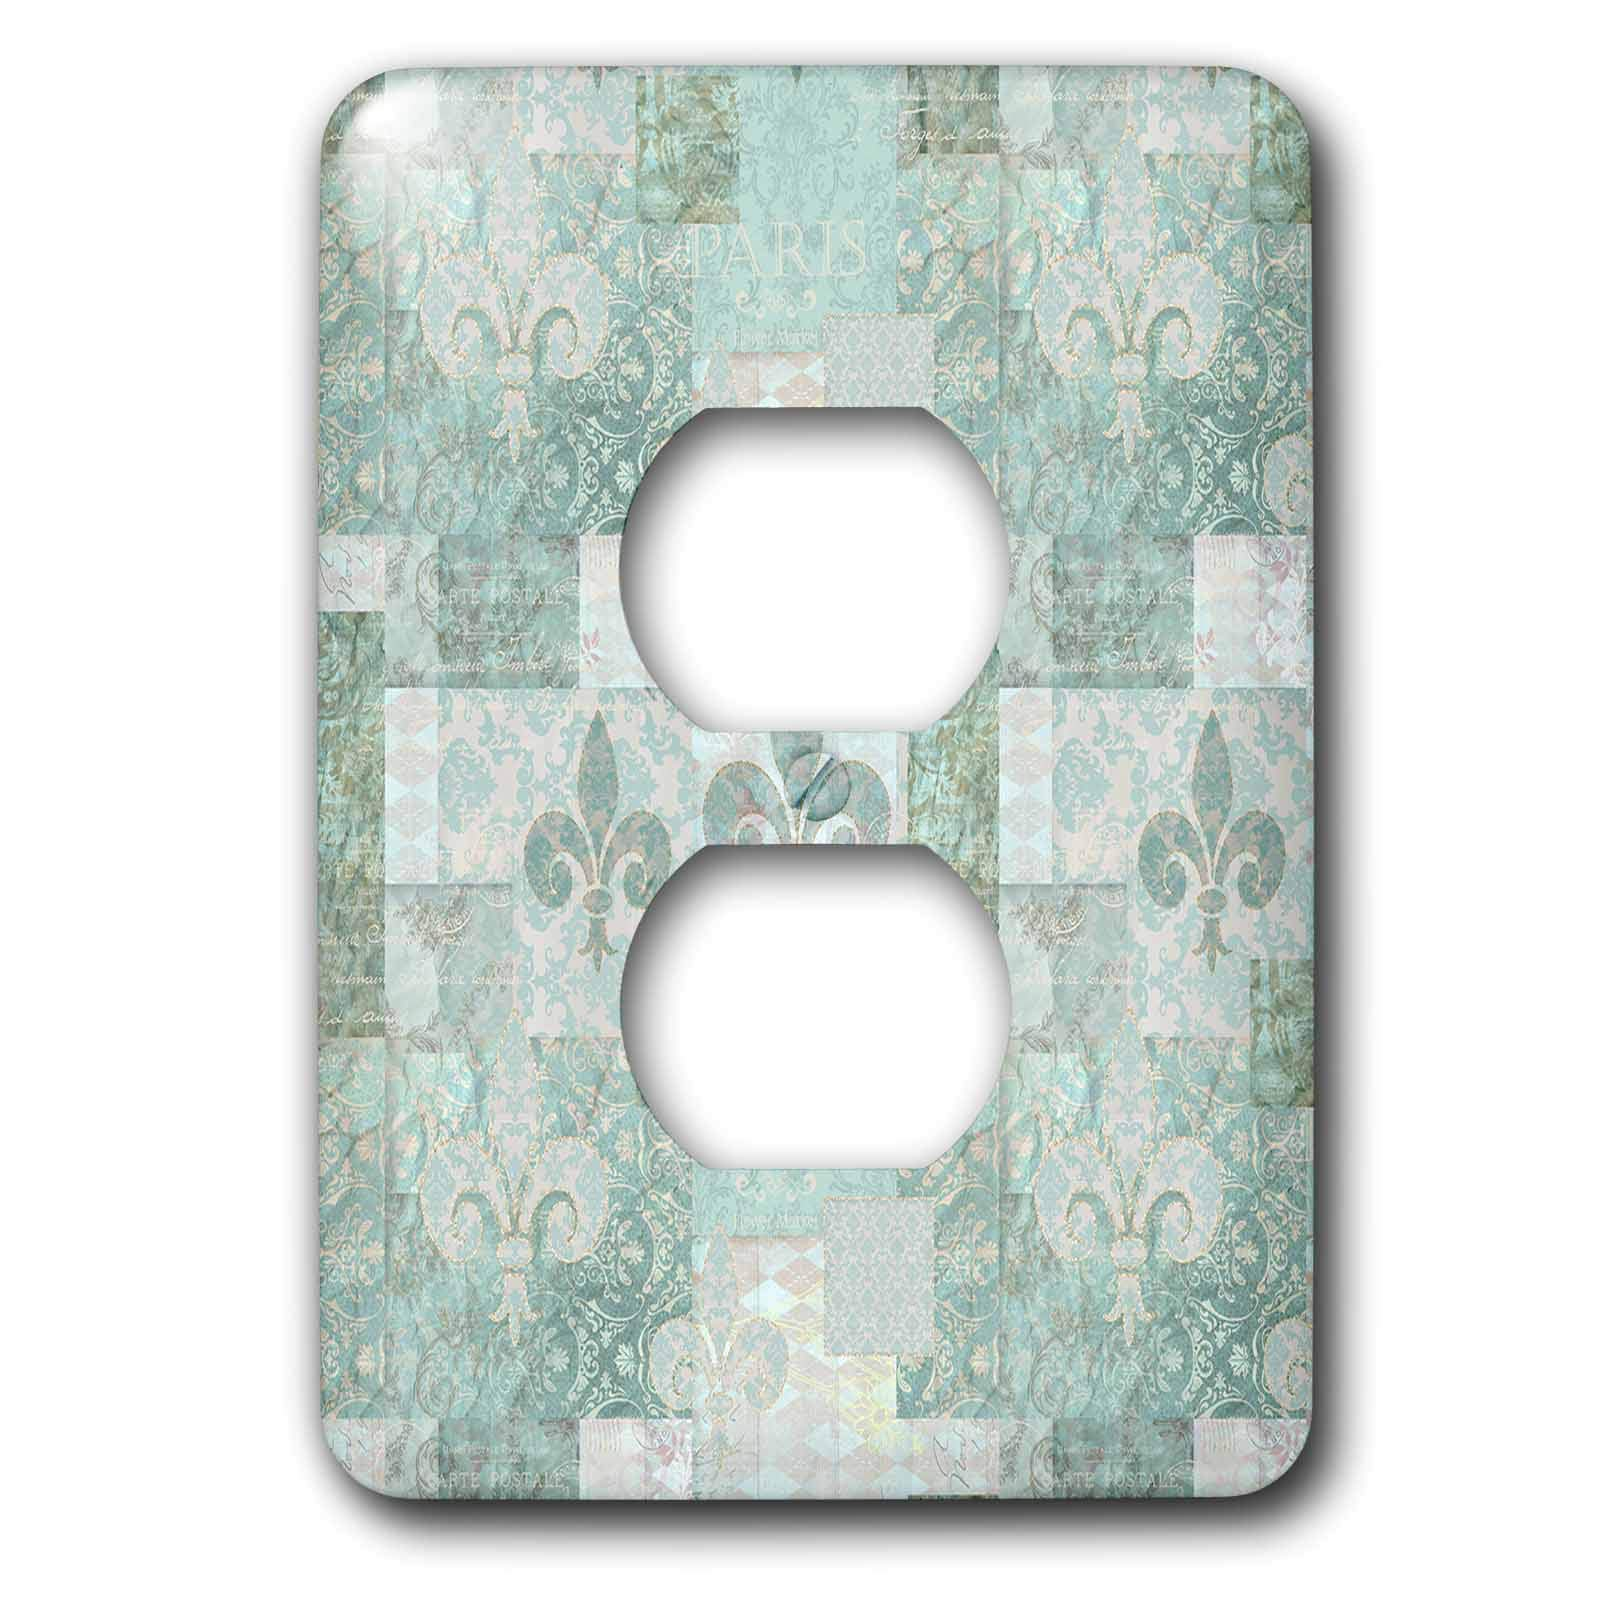 3dRose Andrea Haase Allover Pattern - Vintage Patchwork And Ornament Pattern In Pastel Teal - Light Switch Covers - 2 plug outlet cover (lsp_289393_6)